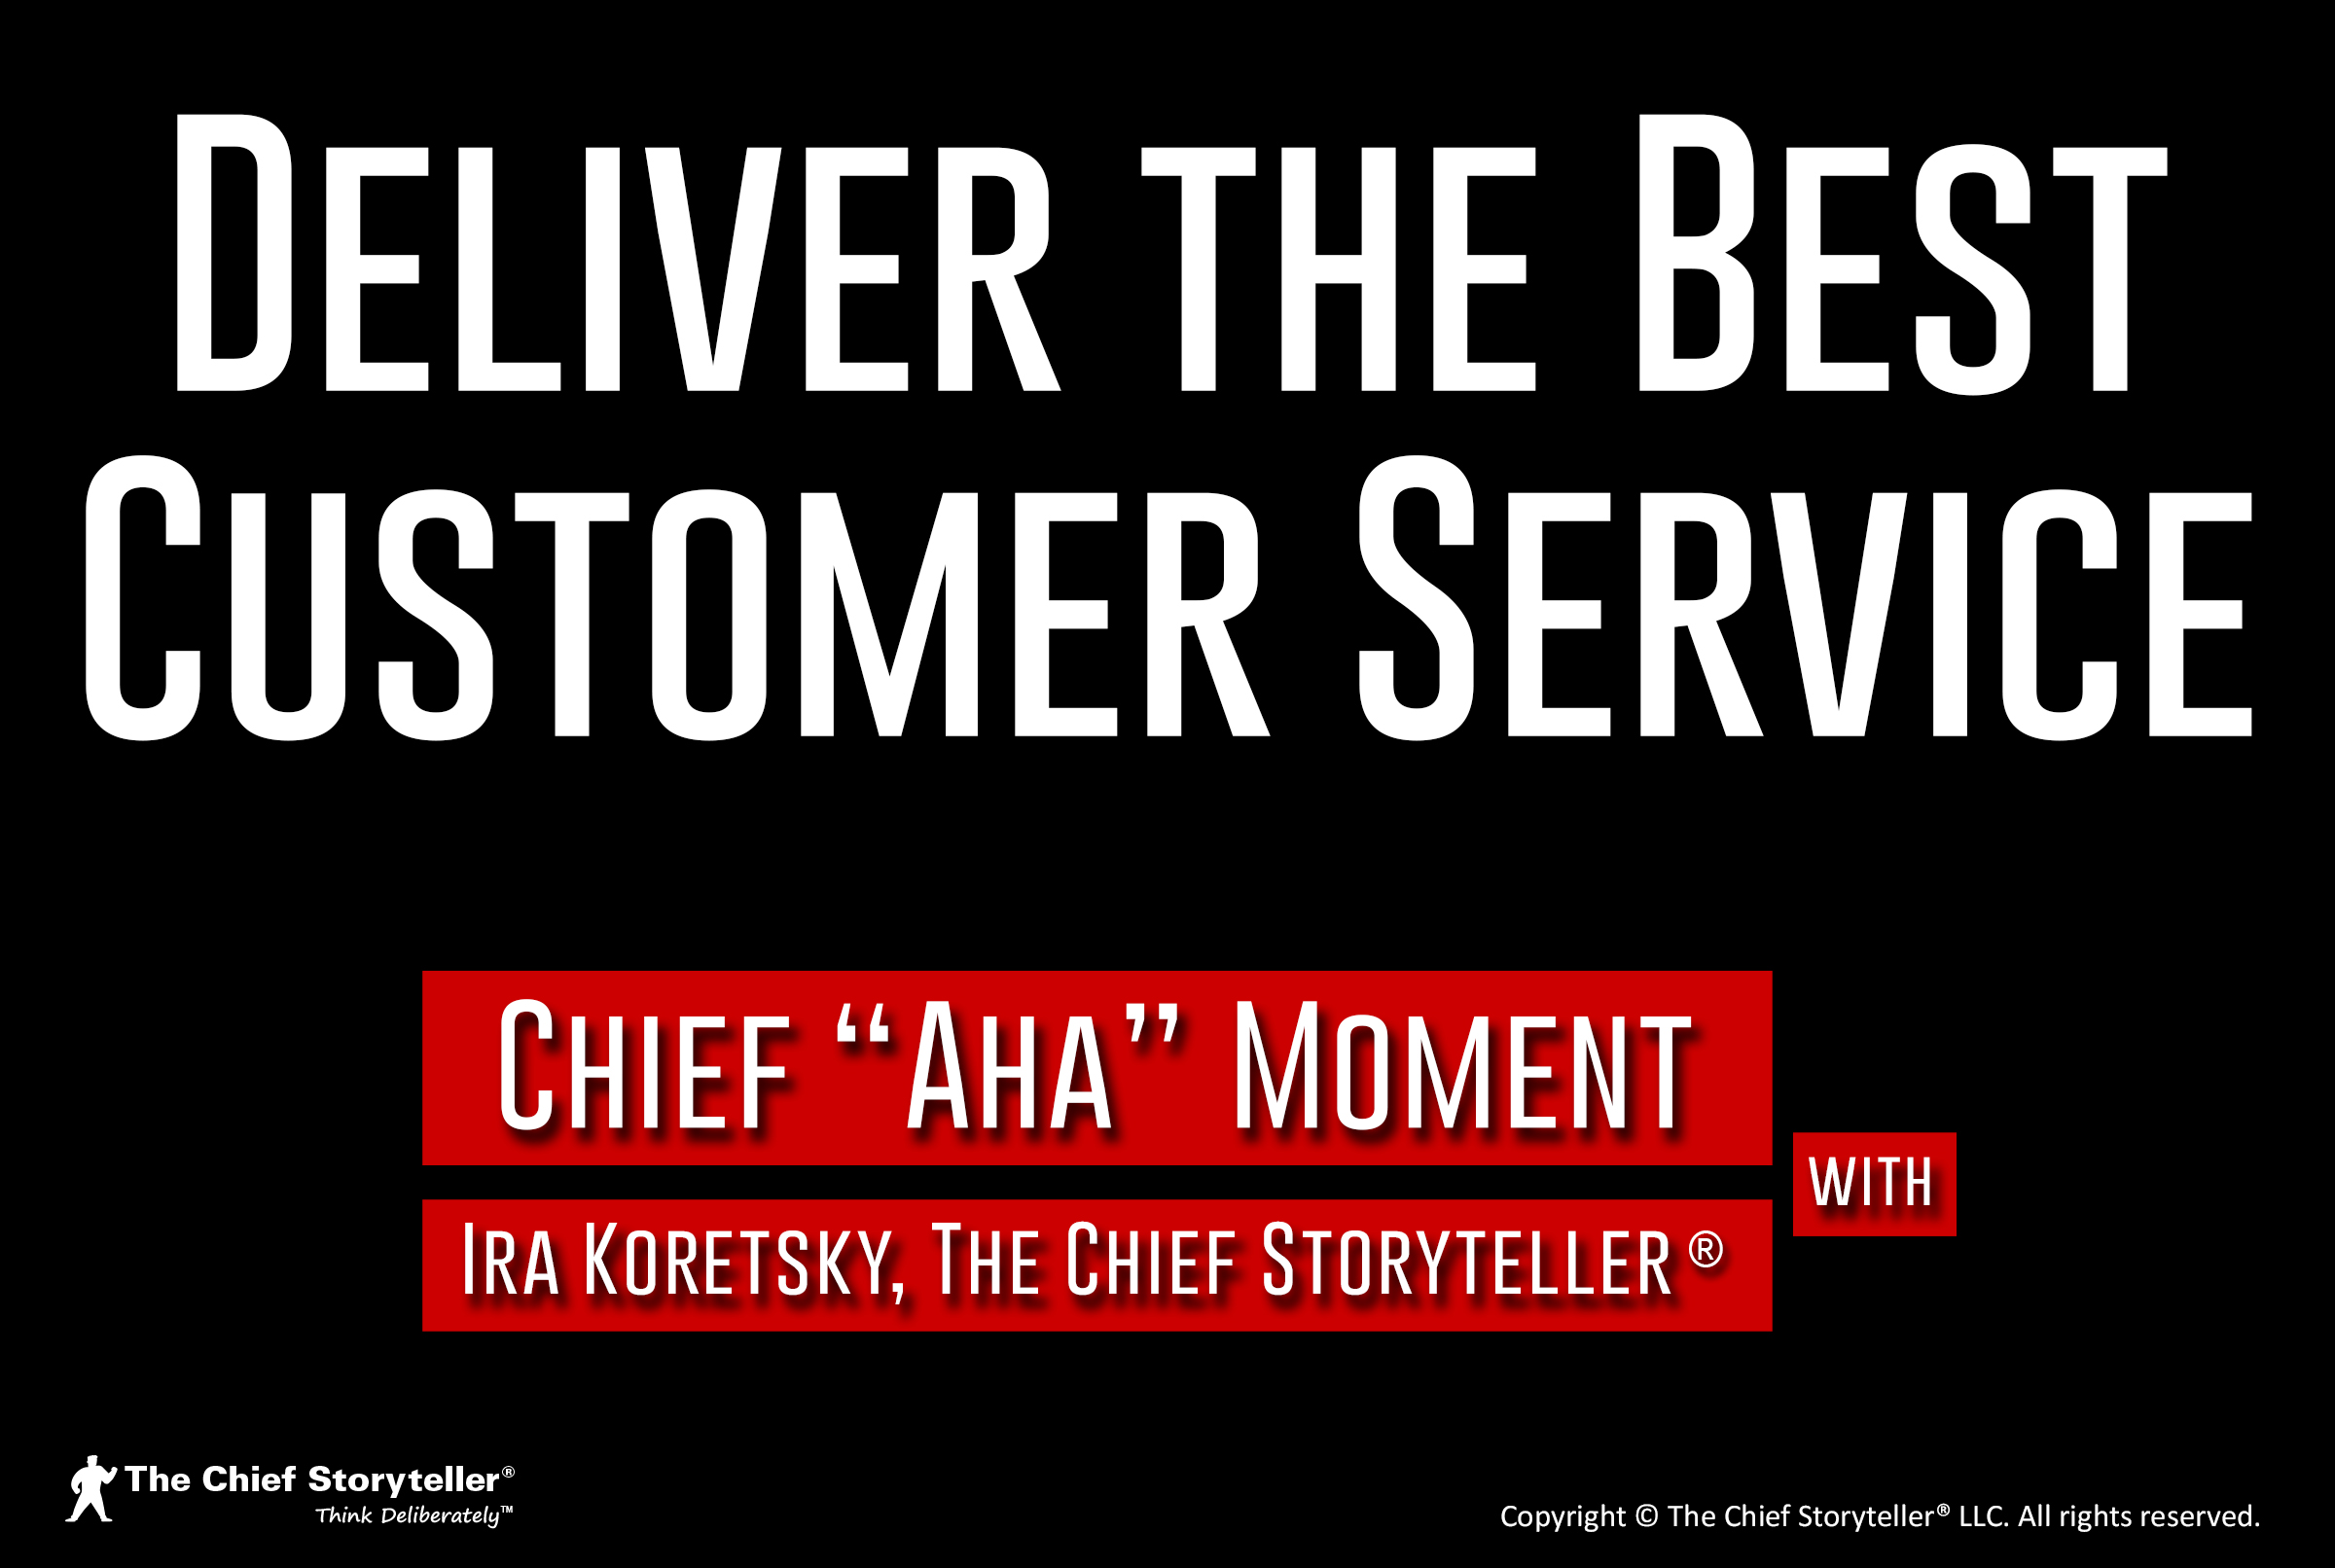 Deliver the Best Customer Service